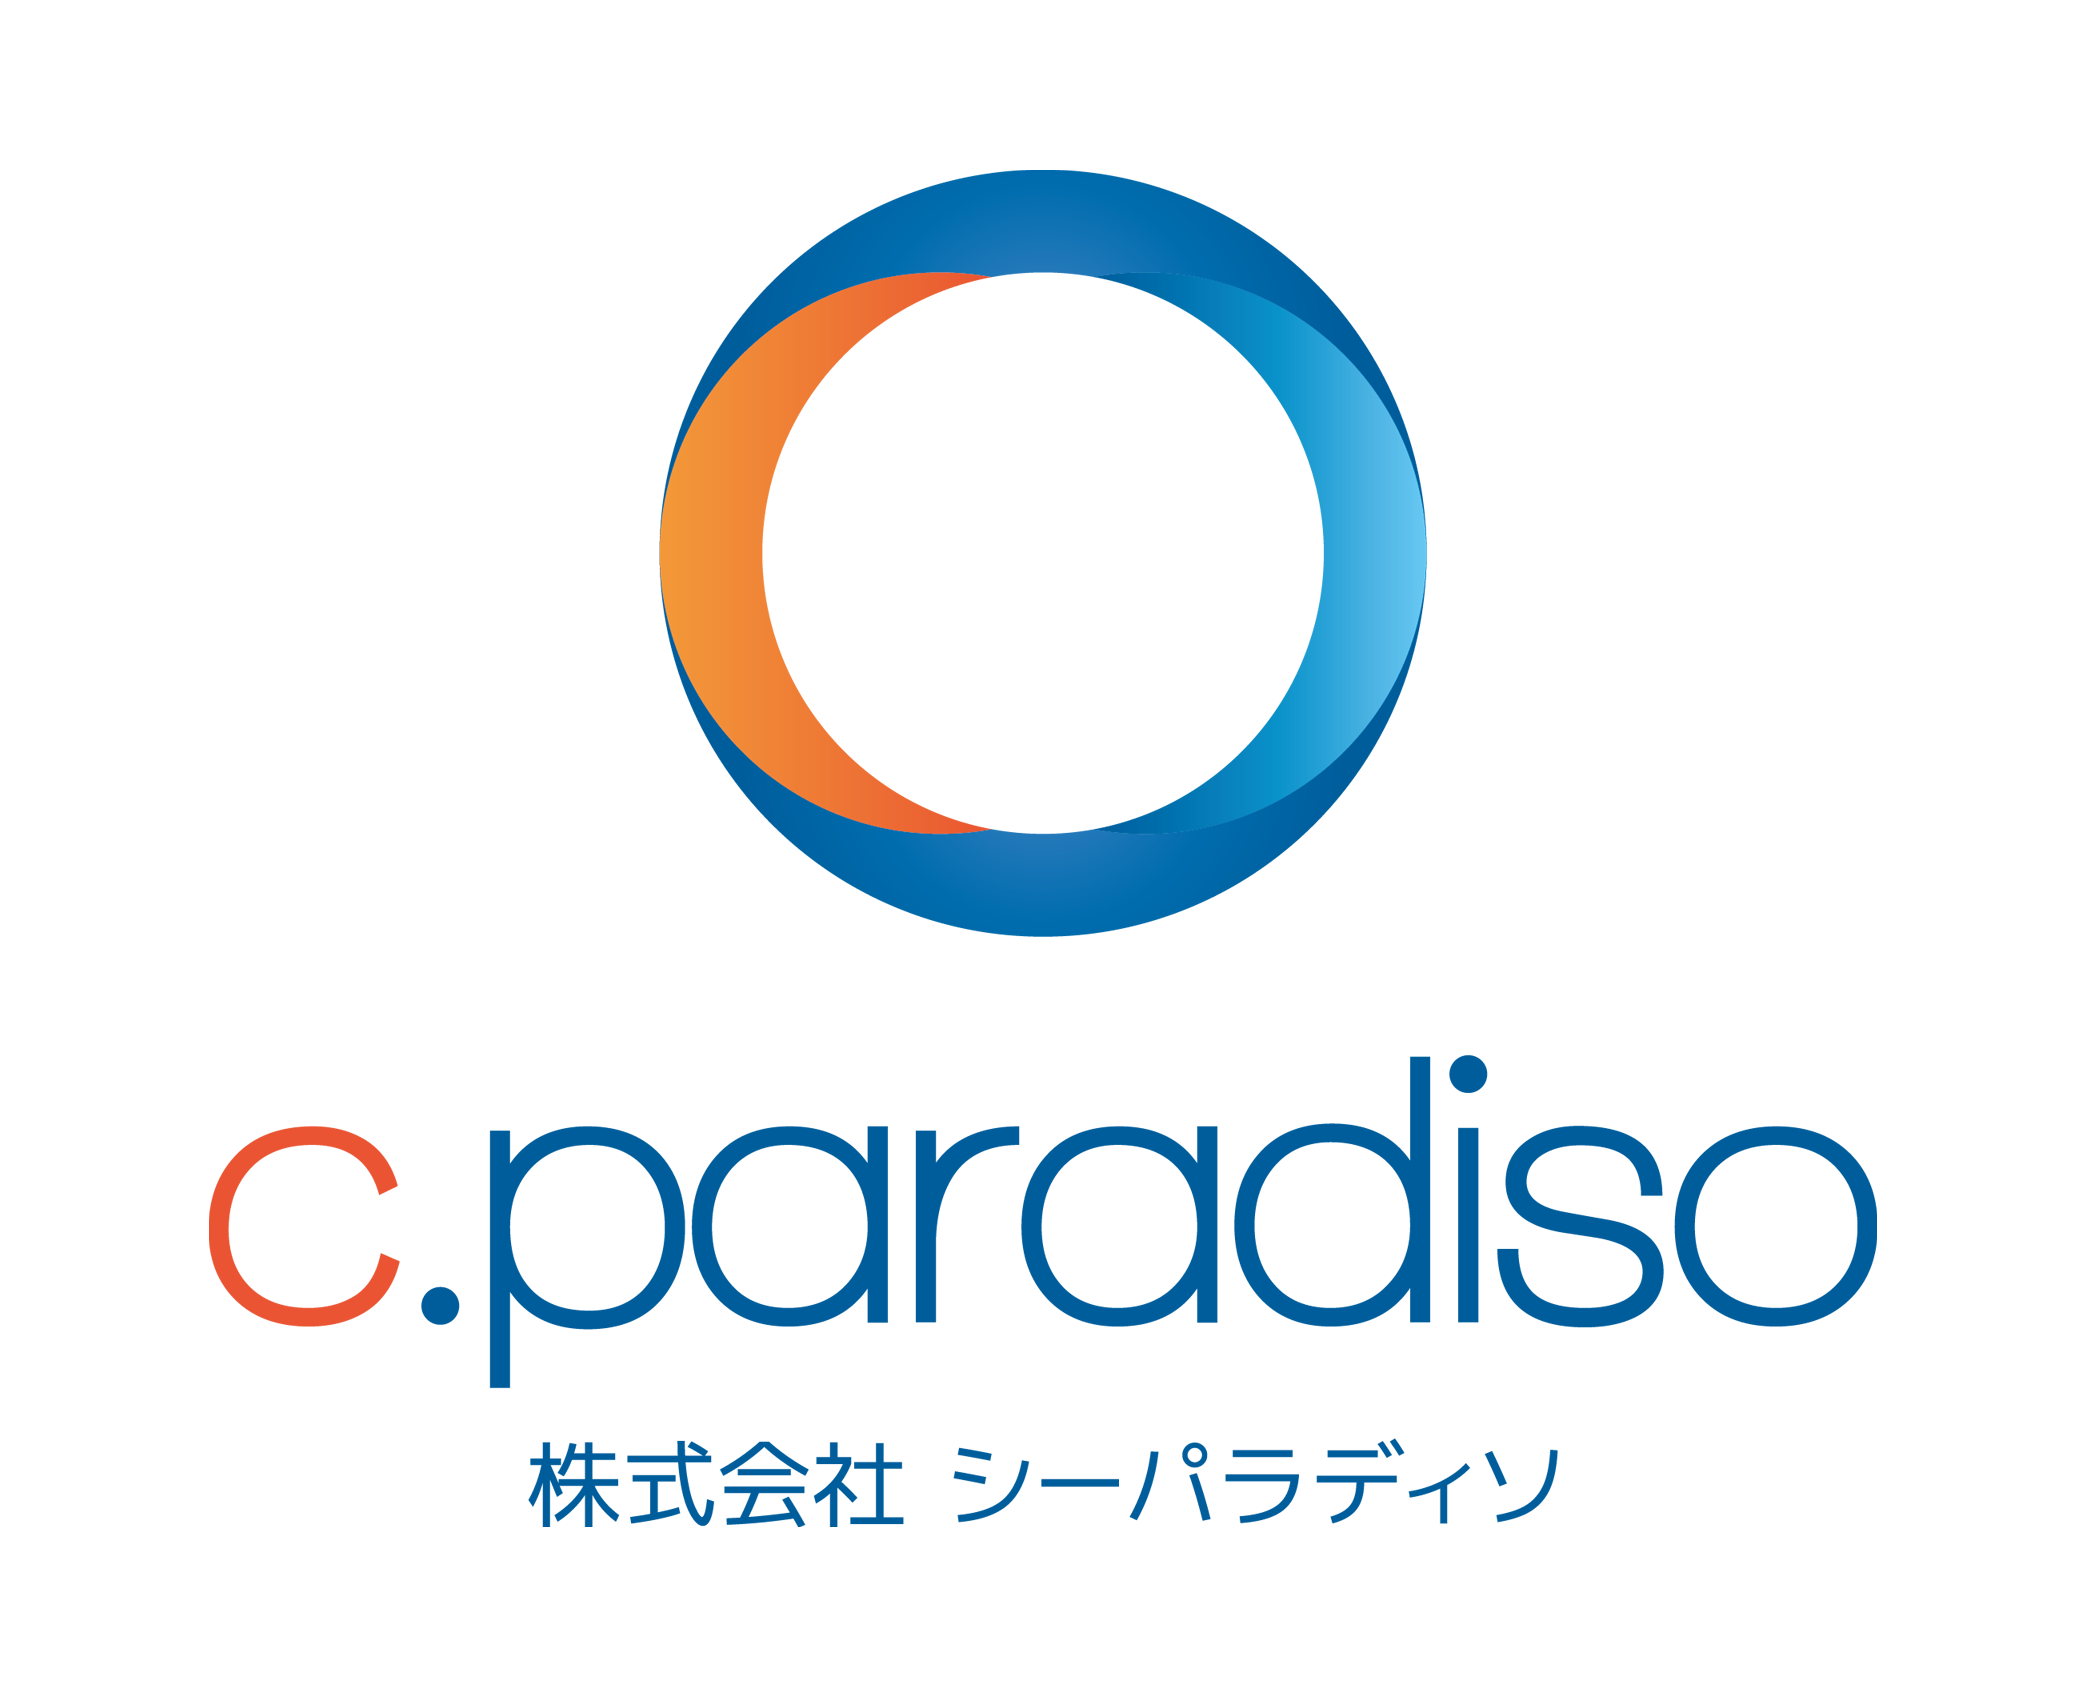 c.paradiso Co. Ltd.